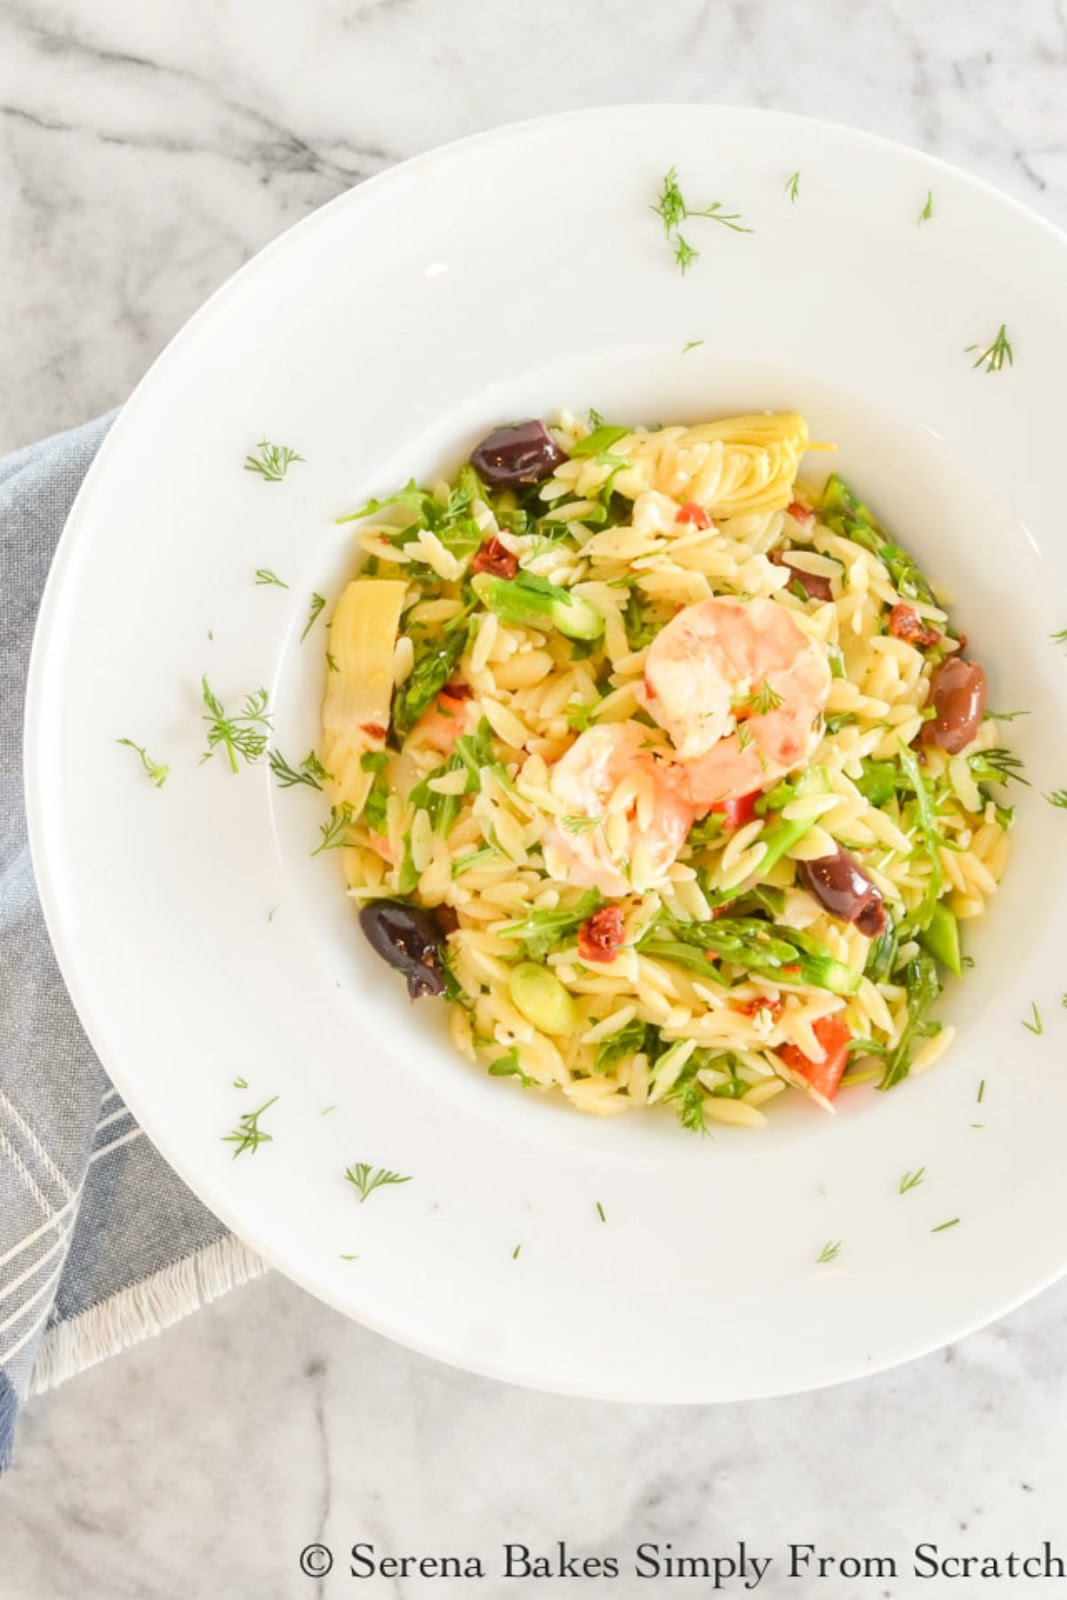 Shrimp Orzo Pasta Salad is delicious served warm or cold with roasted shrimp, asparagus, artichoke hearts, and lots of other goodies makes this a favorite from Serena Bakes Simply From Scratch.